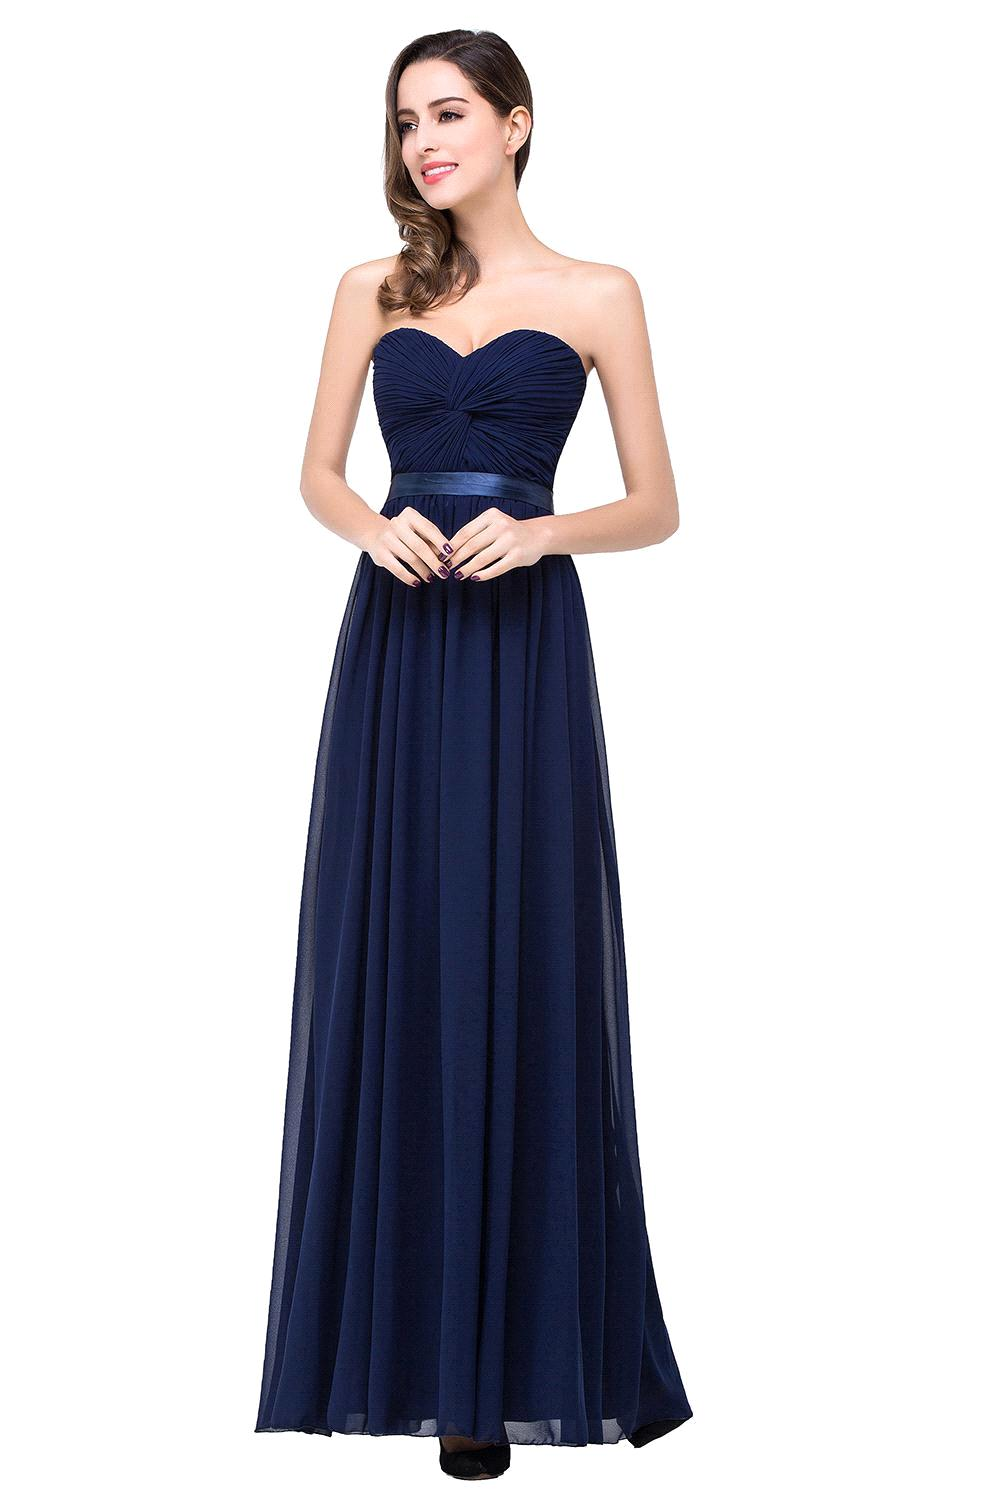 Online Get Cheap Prom Dresses under 50 -Aliexpress.com | Alibaba Group